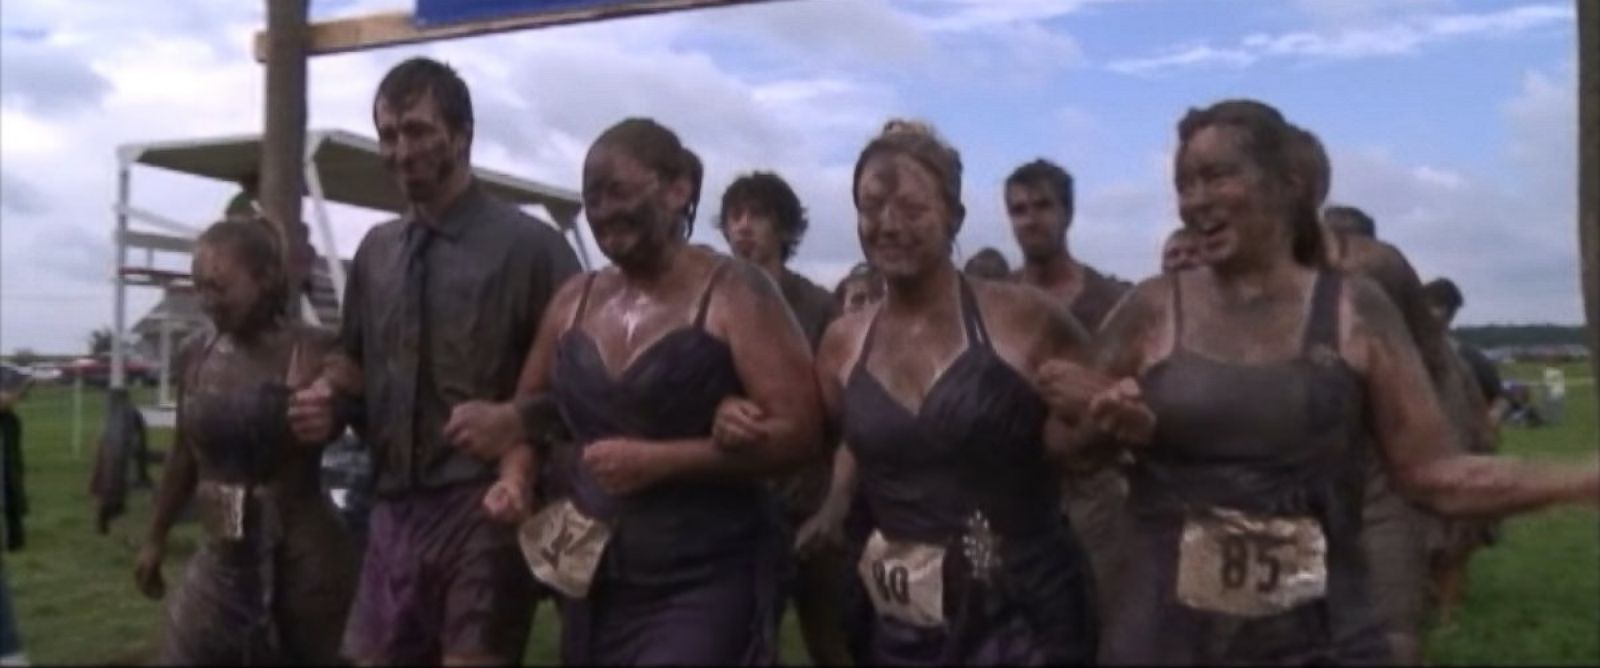 PHOTO: This film grab shows the four Hall sisters finishing the Udder Mudder race in honor of their sister, Shannon Hall, on Sept. 20, 2014.